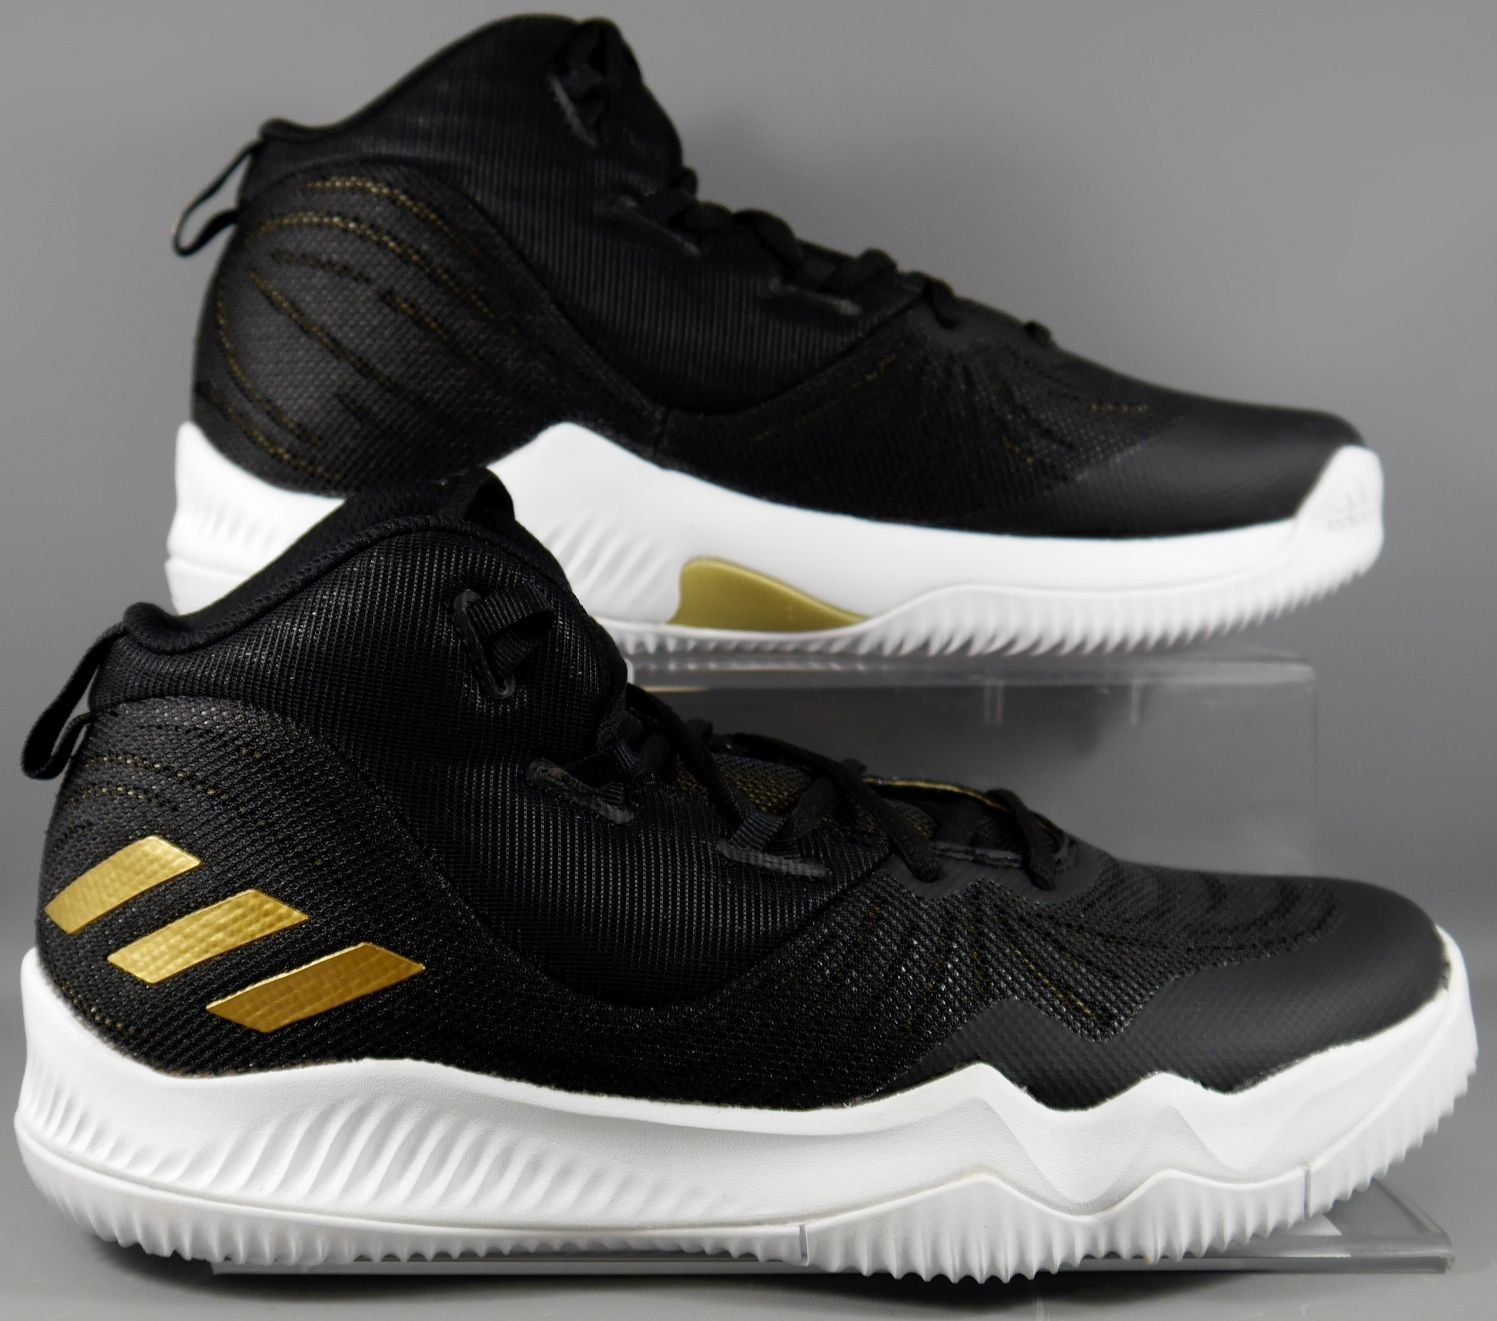 be3a06bc1b97d adidas Derrick Rose Dominate III 3 Black Gold White Men Basketball Shoe    Sneaker CQ0727